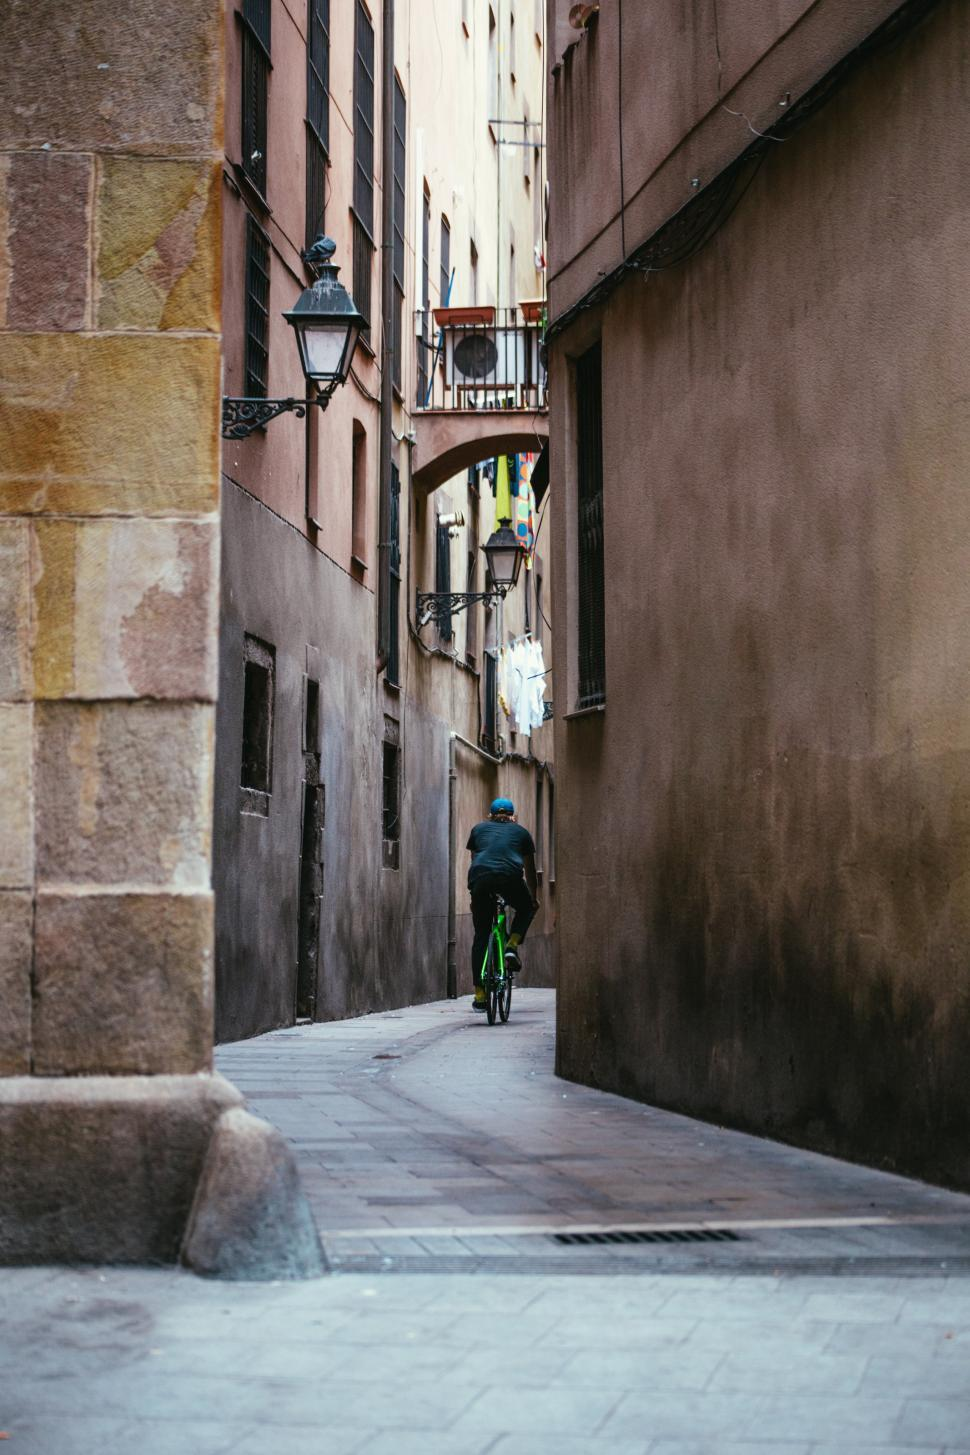 Download Free Stock HD Photo of Cycling down a narrow alley Online